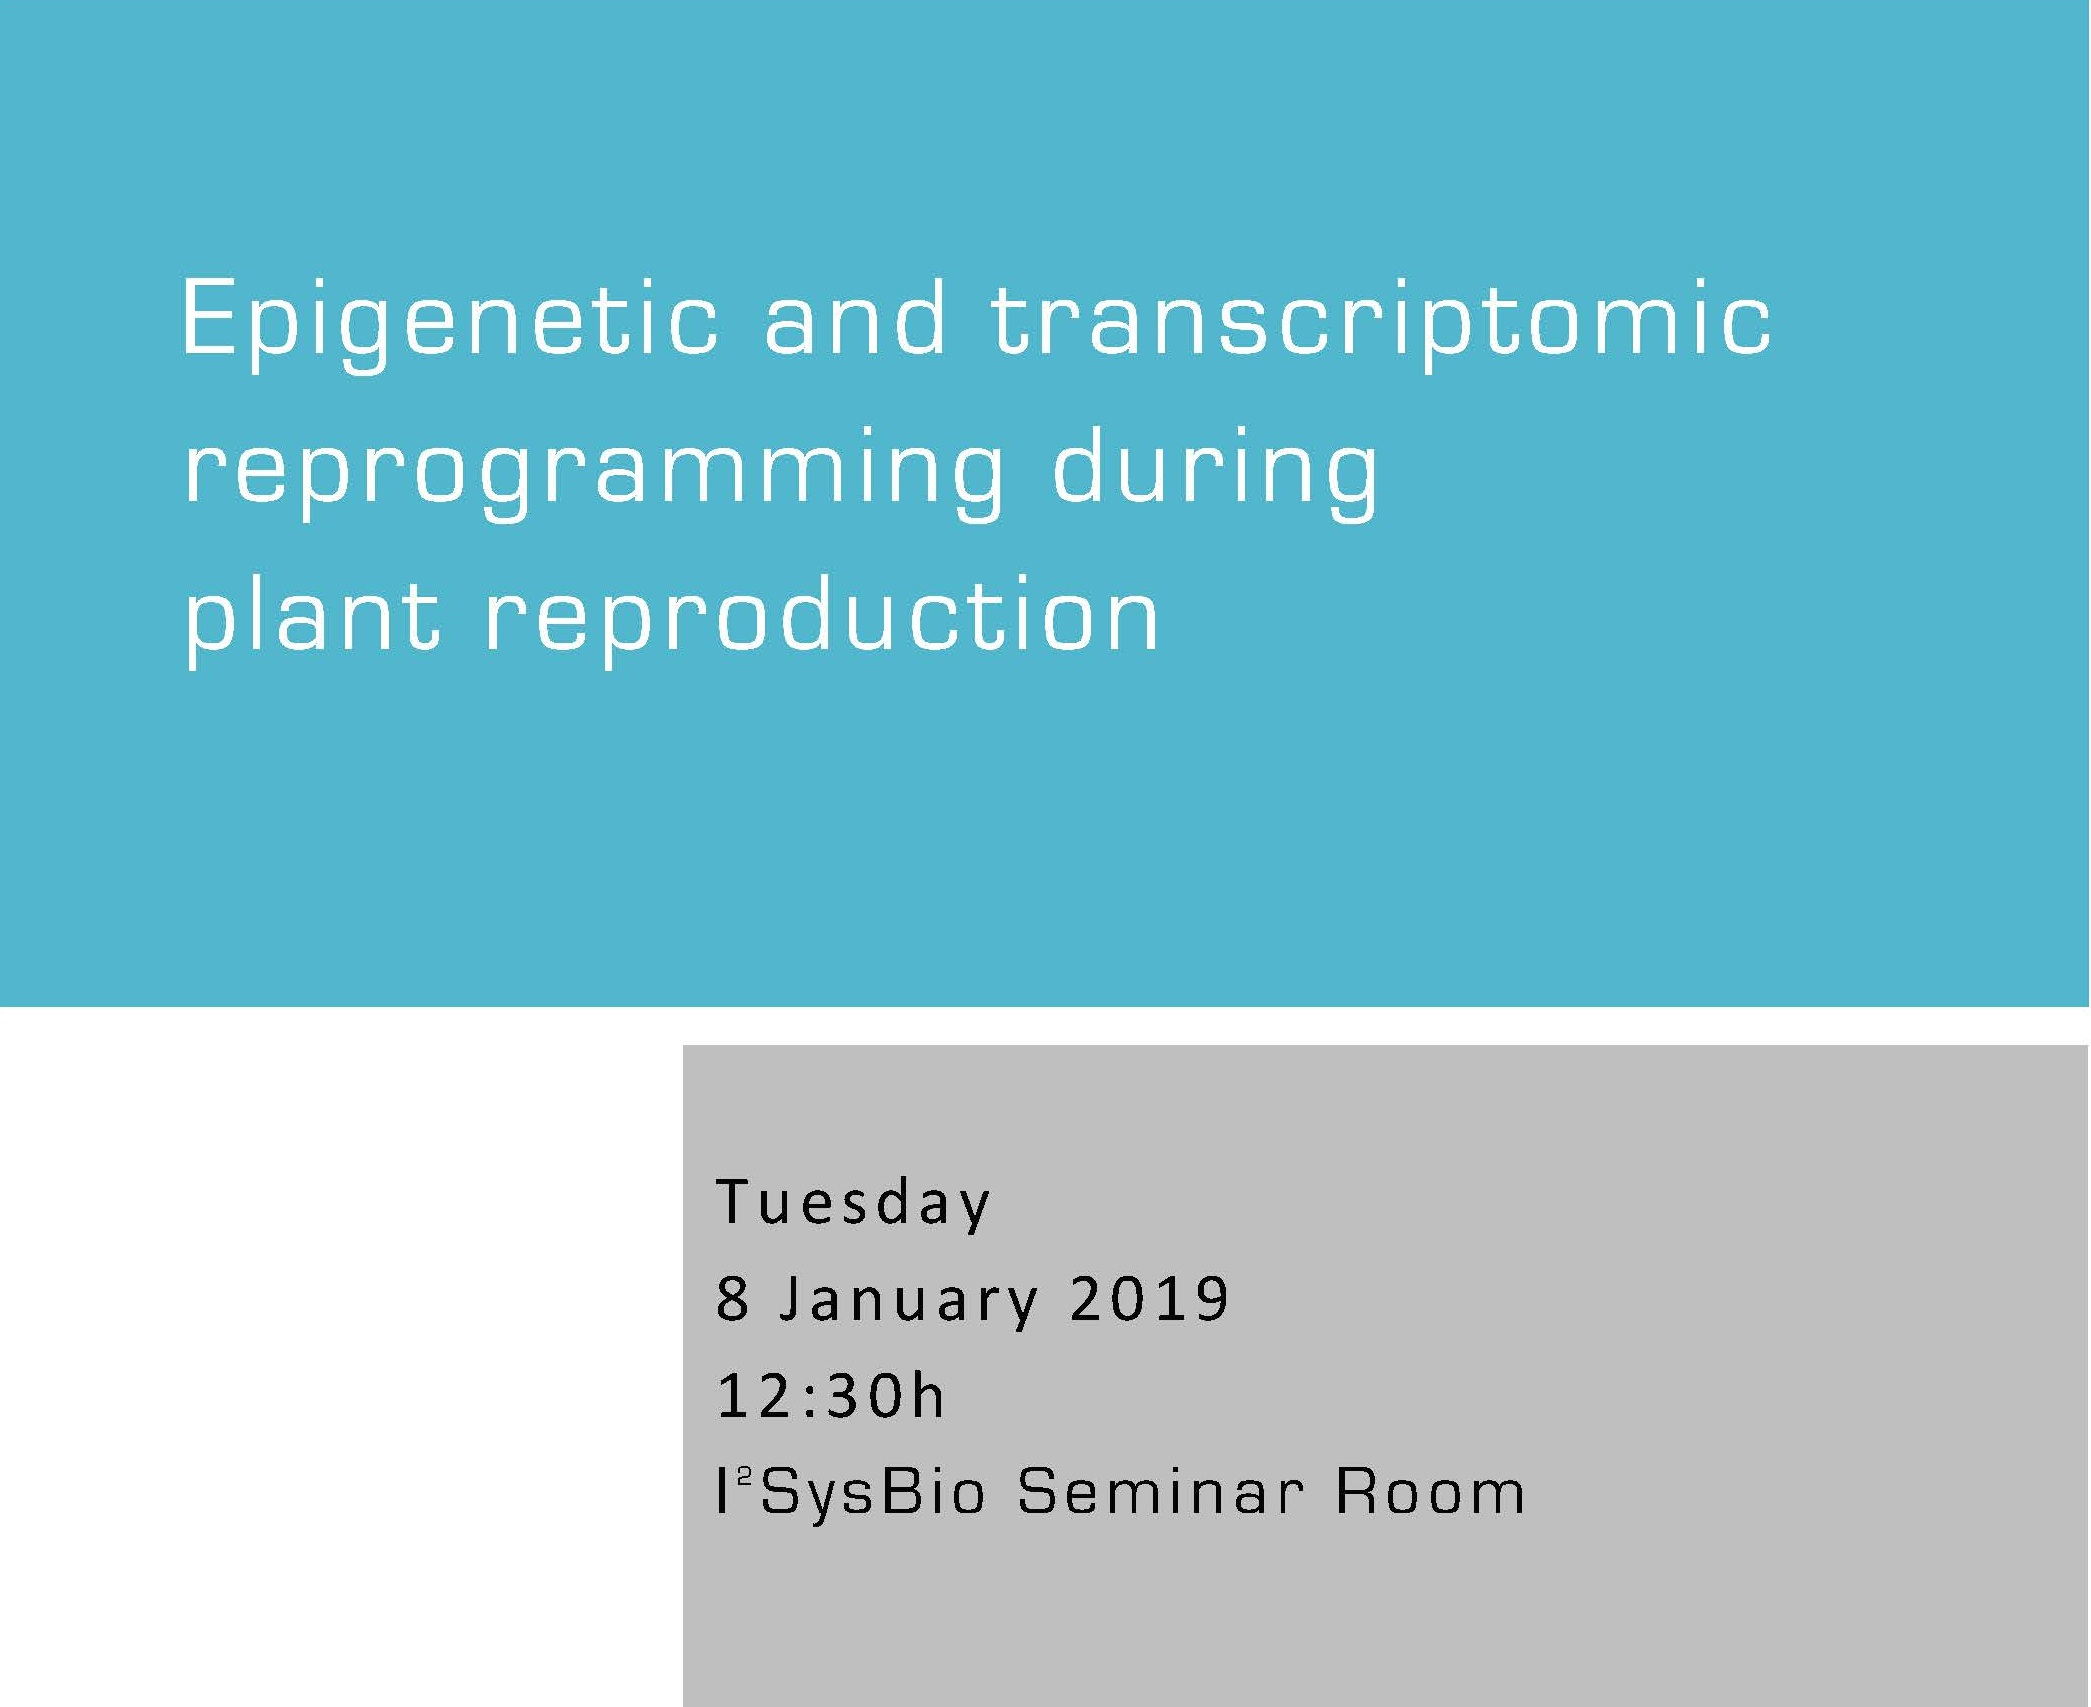 Epigenetic and transcriptomic reprogramming during plant reproduction